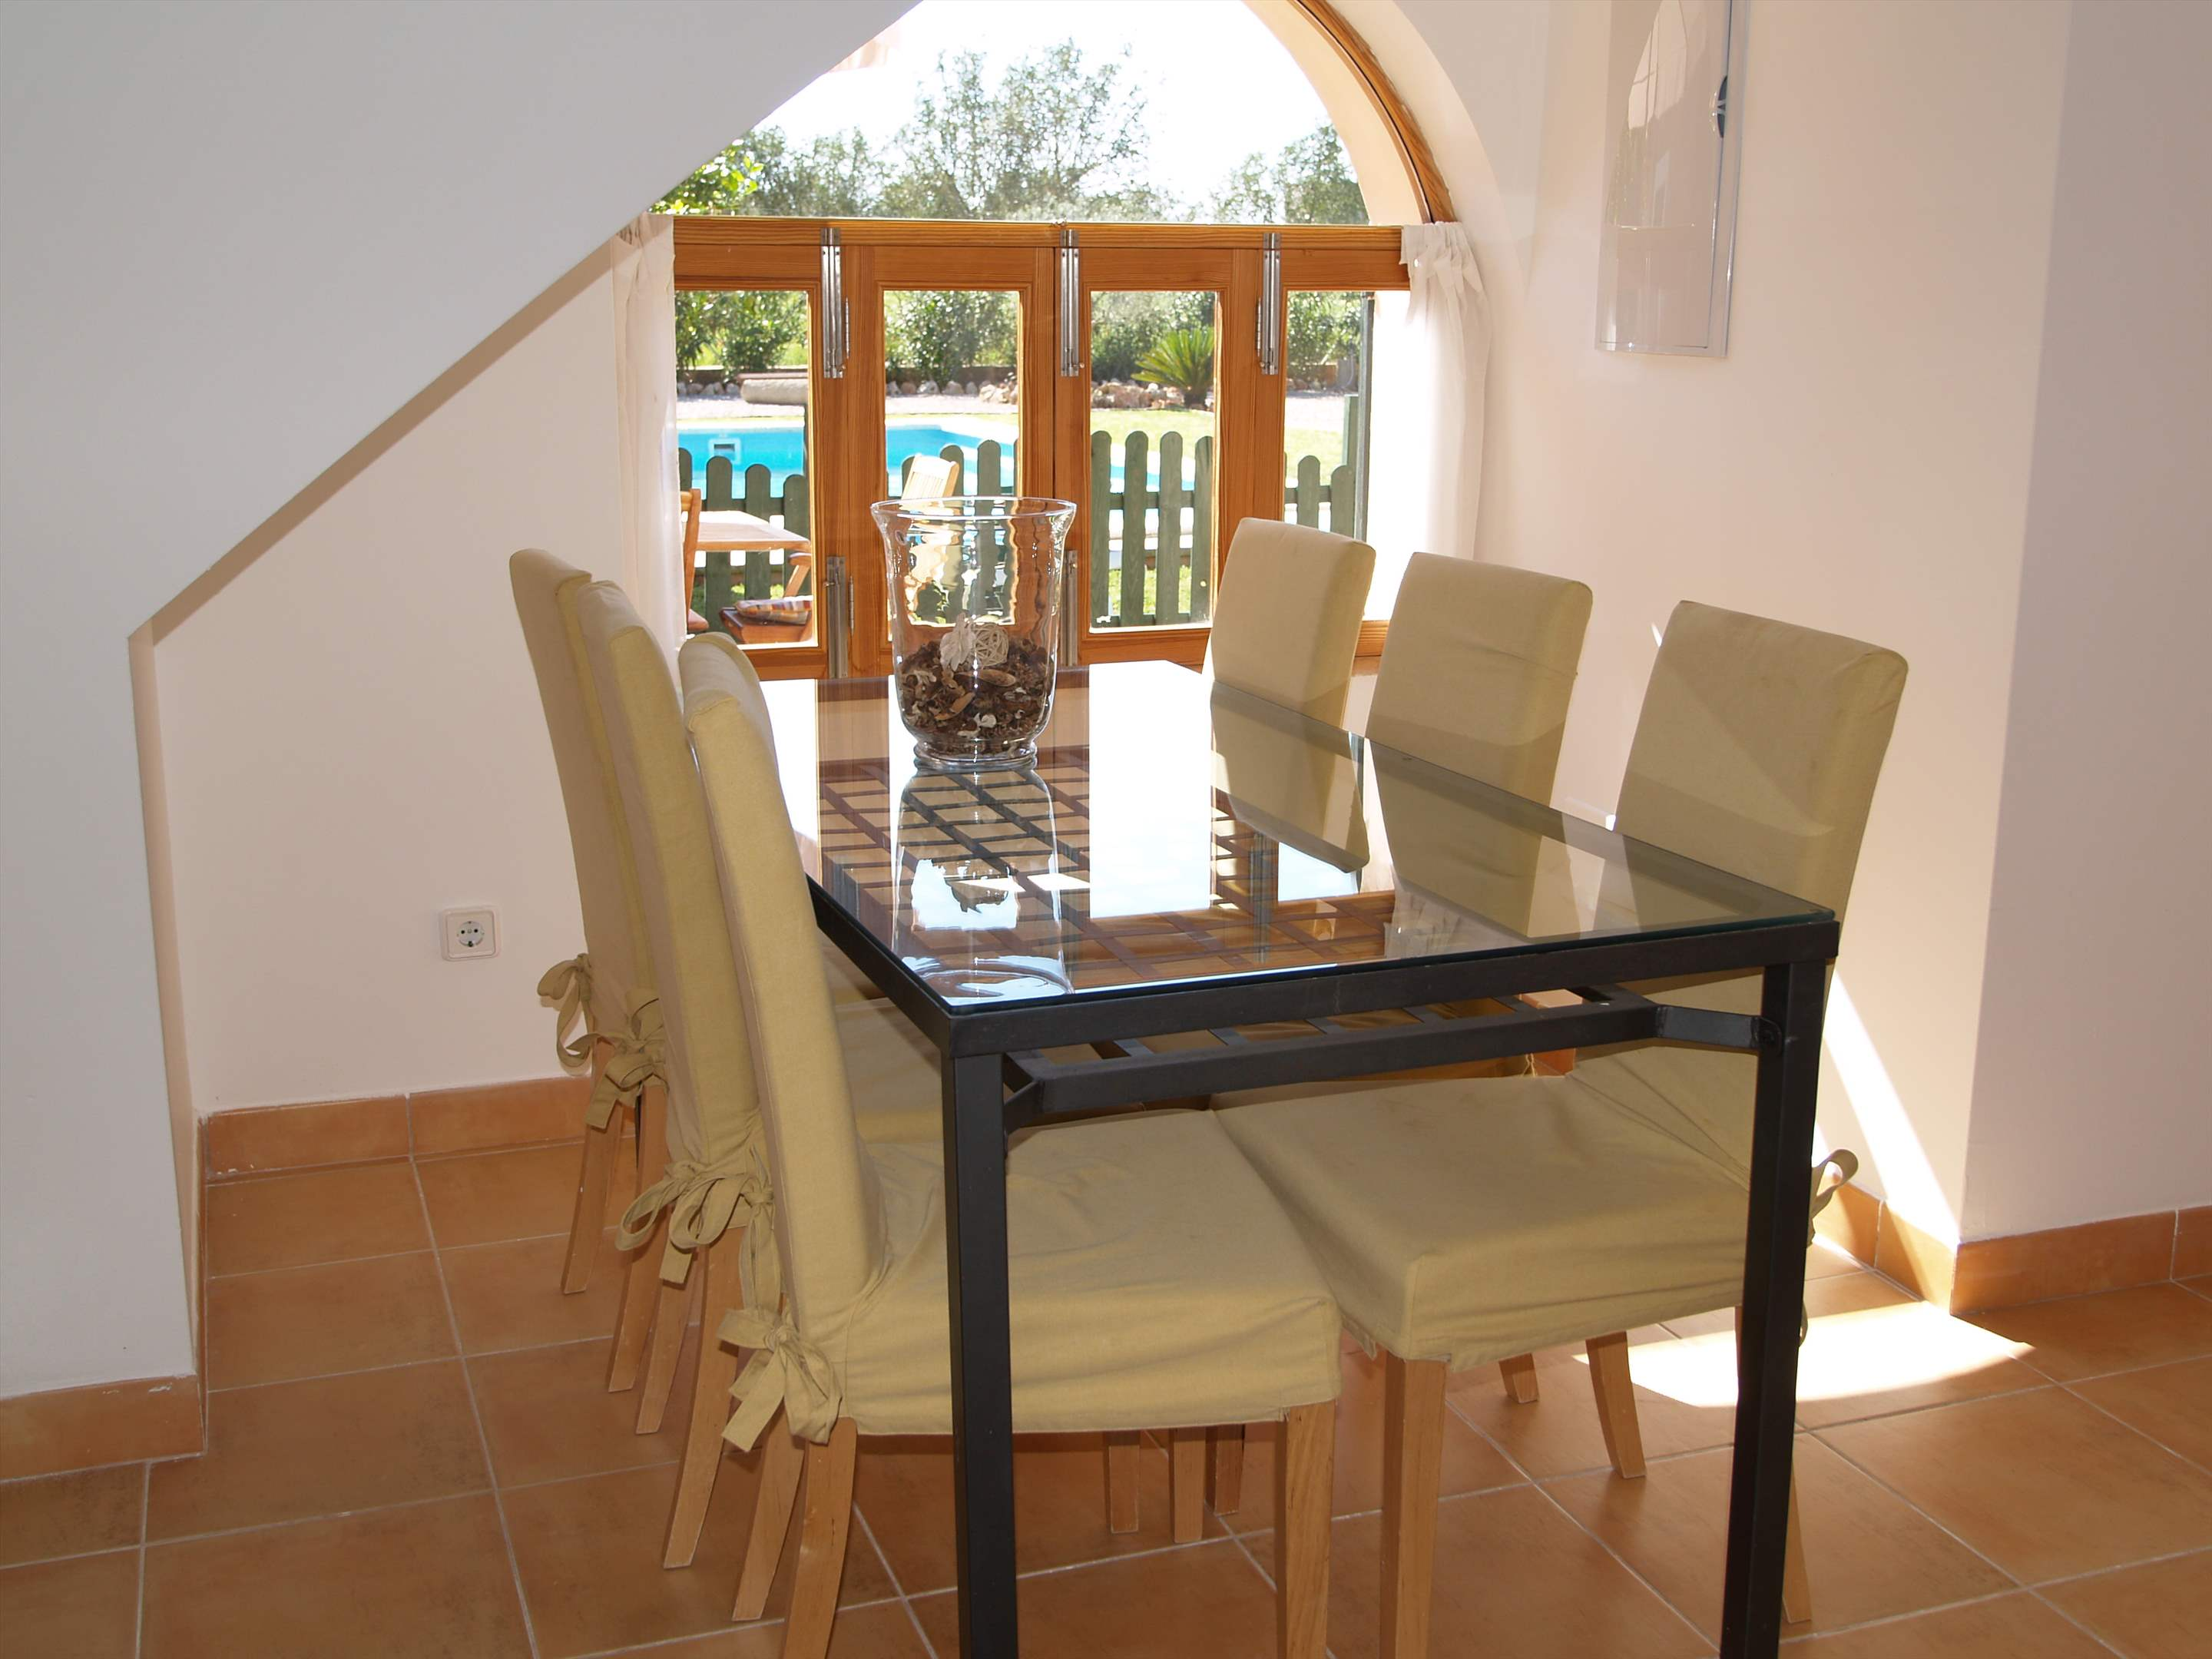 Son Rengo, 3 bedroom villa in Campos & Sa Rapita , Majorca Photo #6